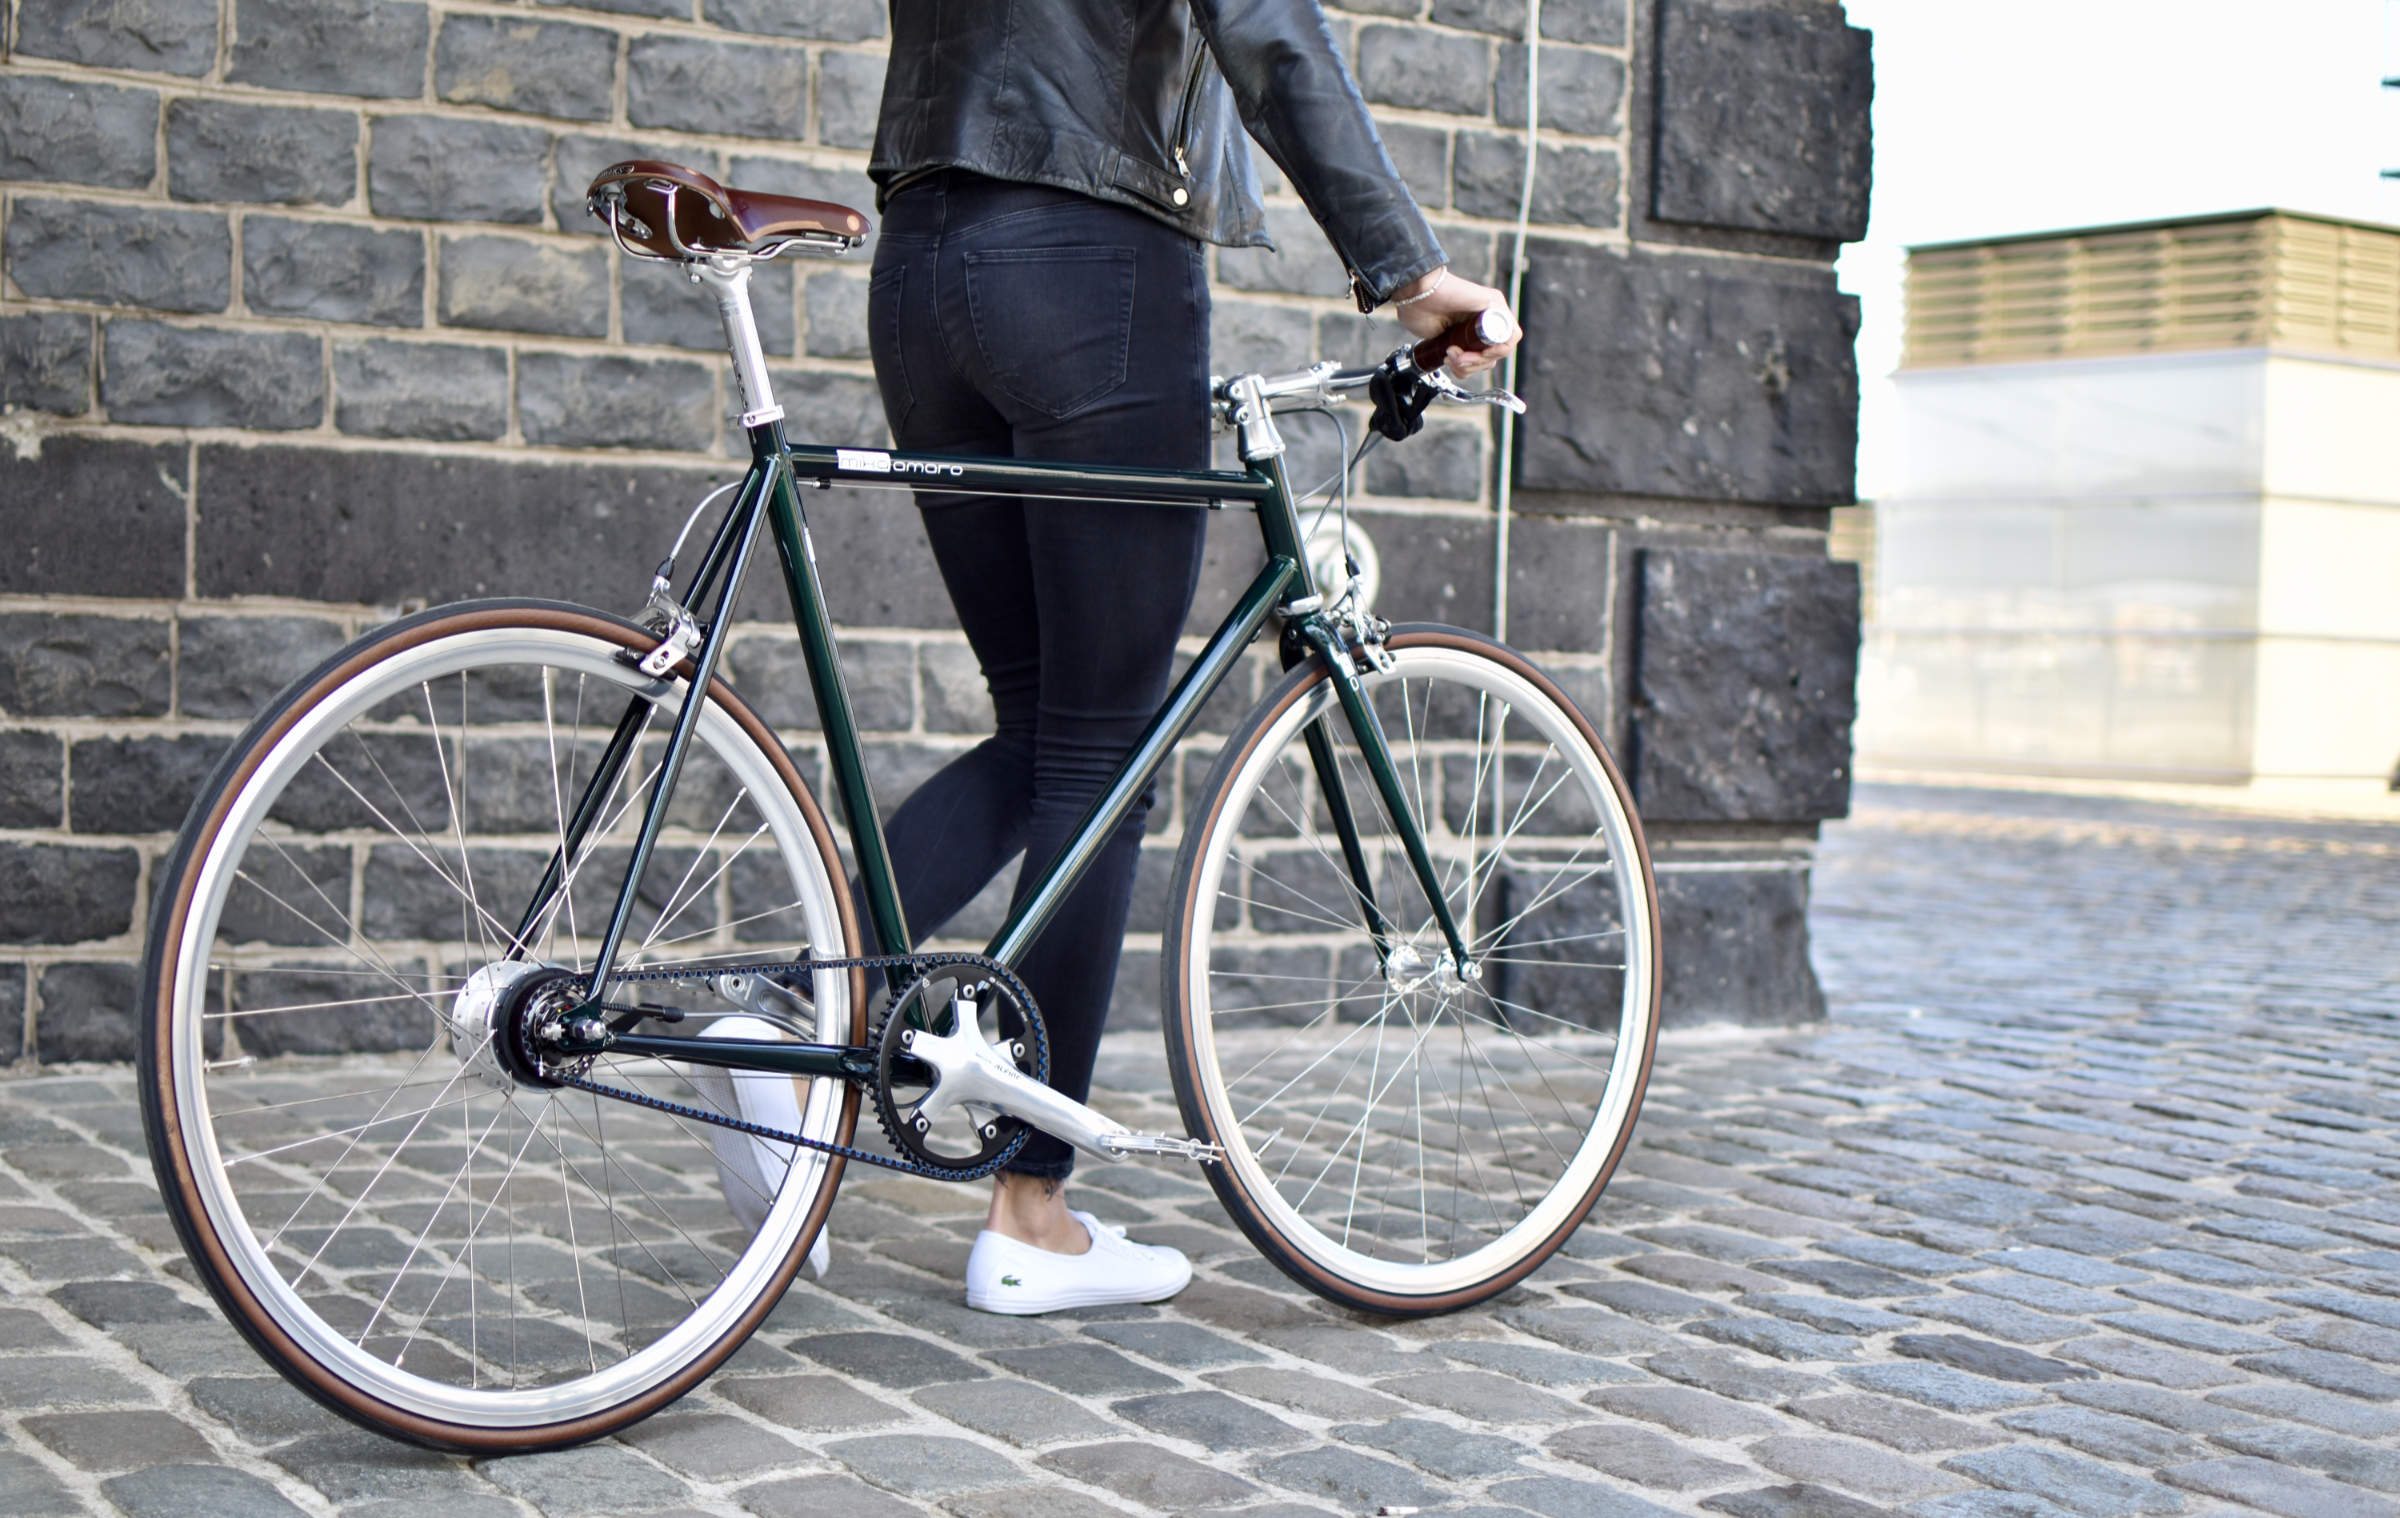 Urban Bike emerald green Gates Carbon Drive Brooks